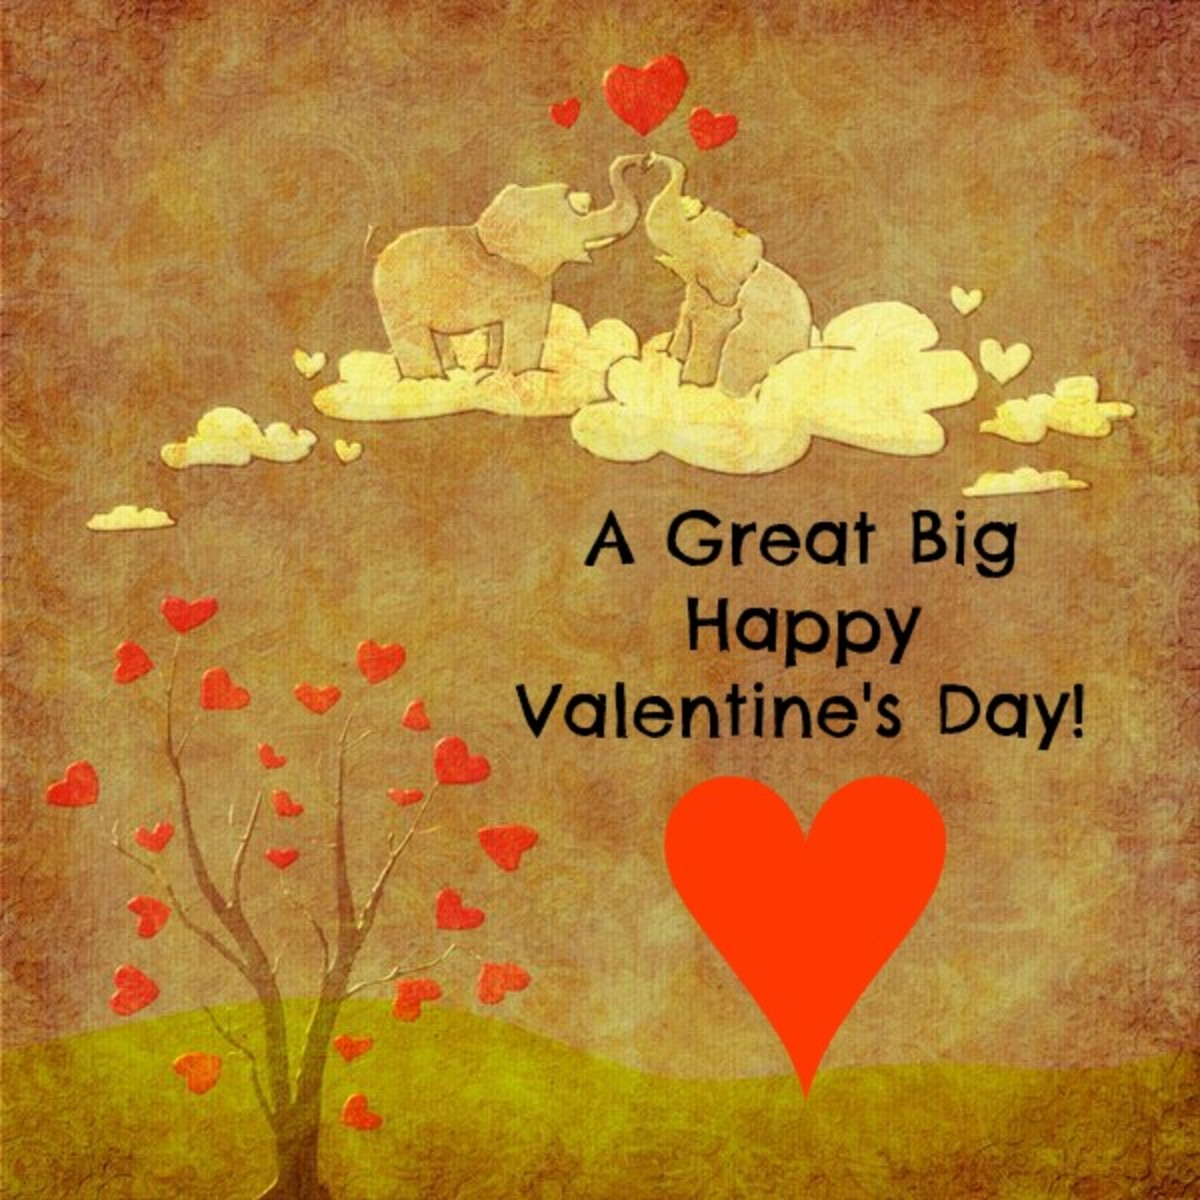 Happy Valentine's Day Message with Elephants in Love